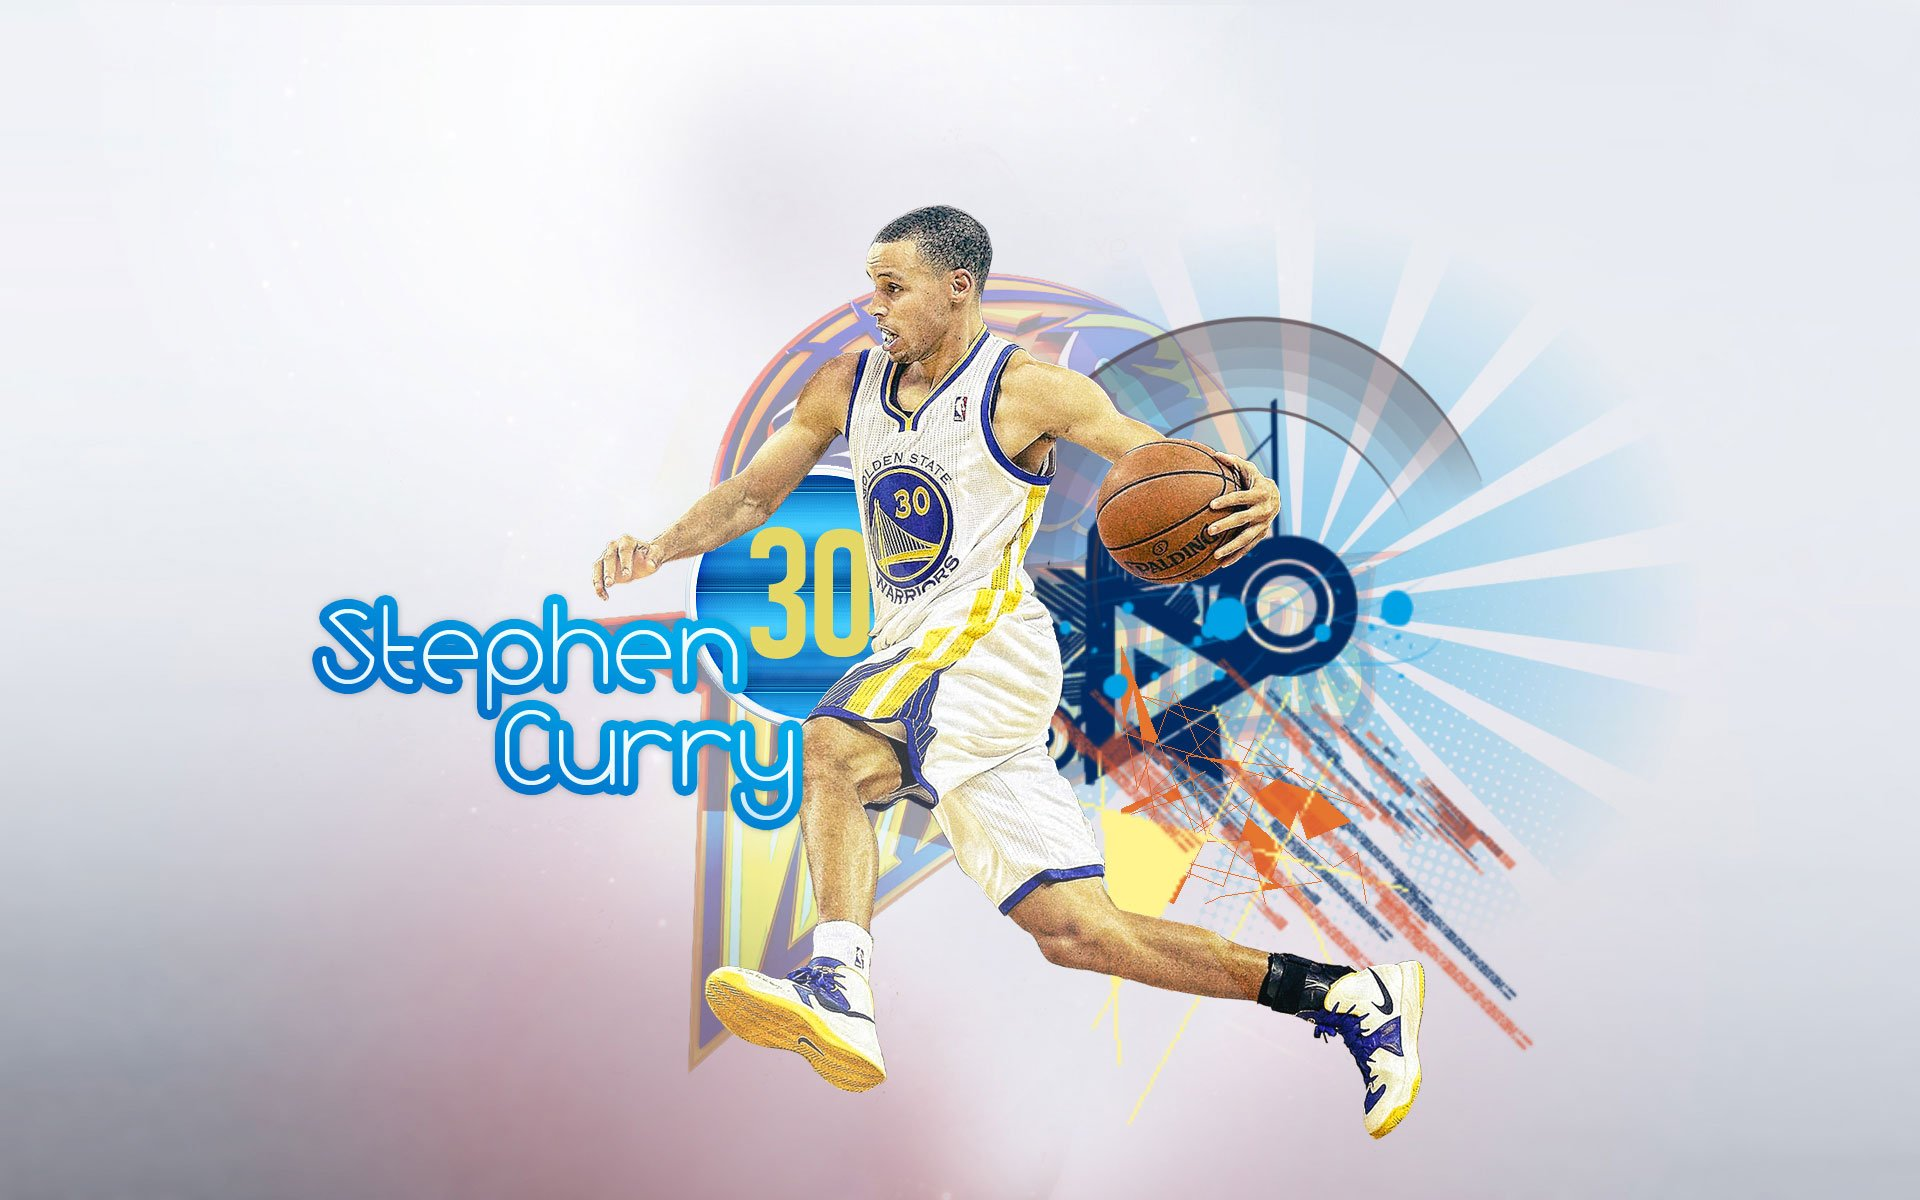 Stephen Curry 2013 19201200 Wallpaper Basketball Wallpapers at 1920x1200